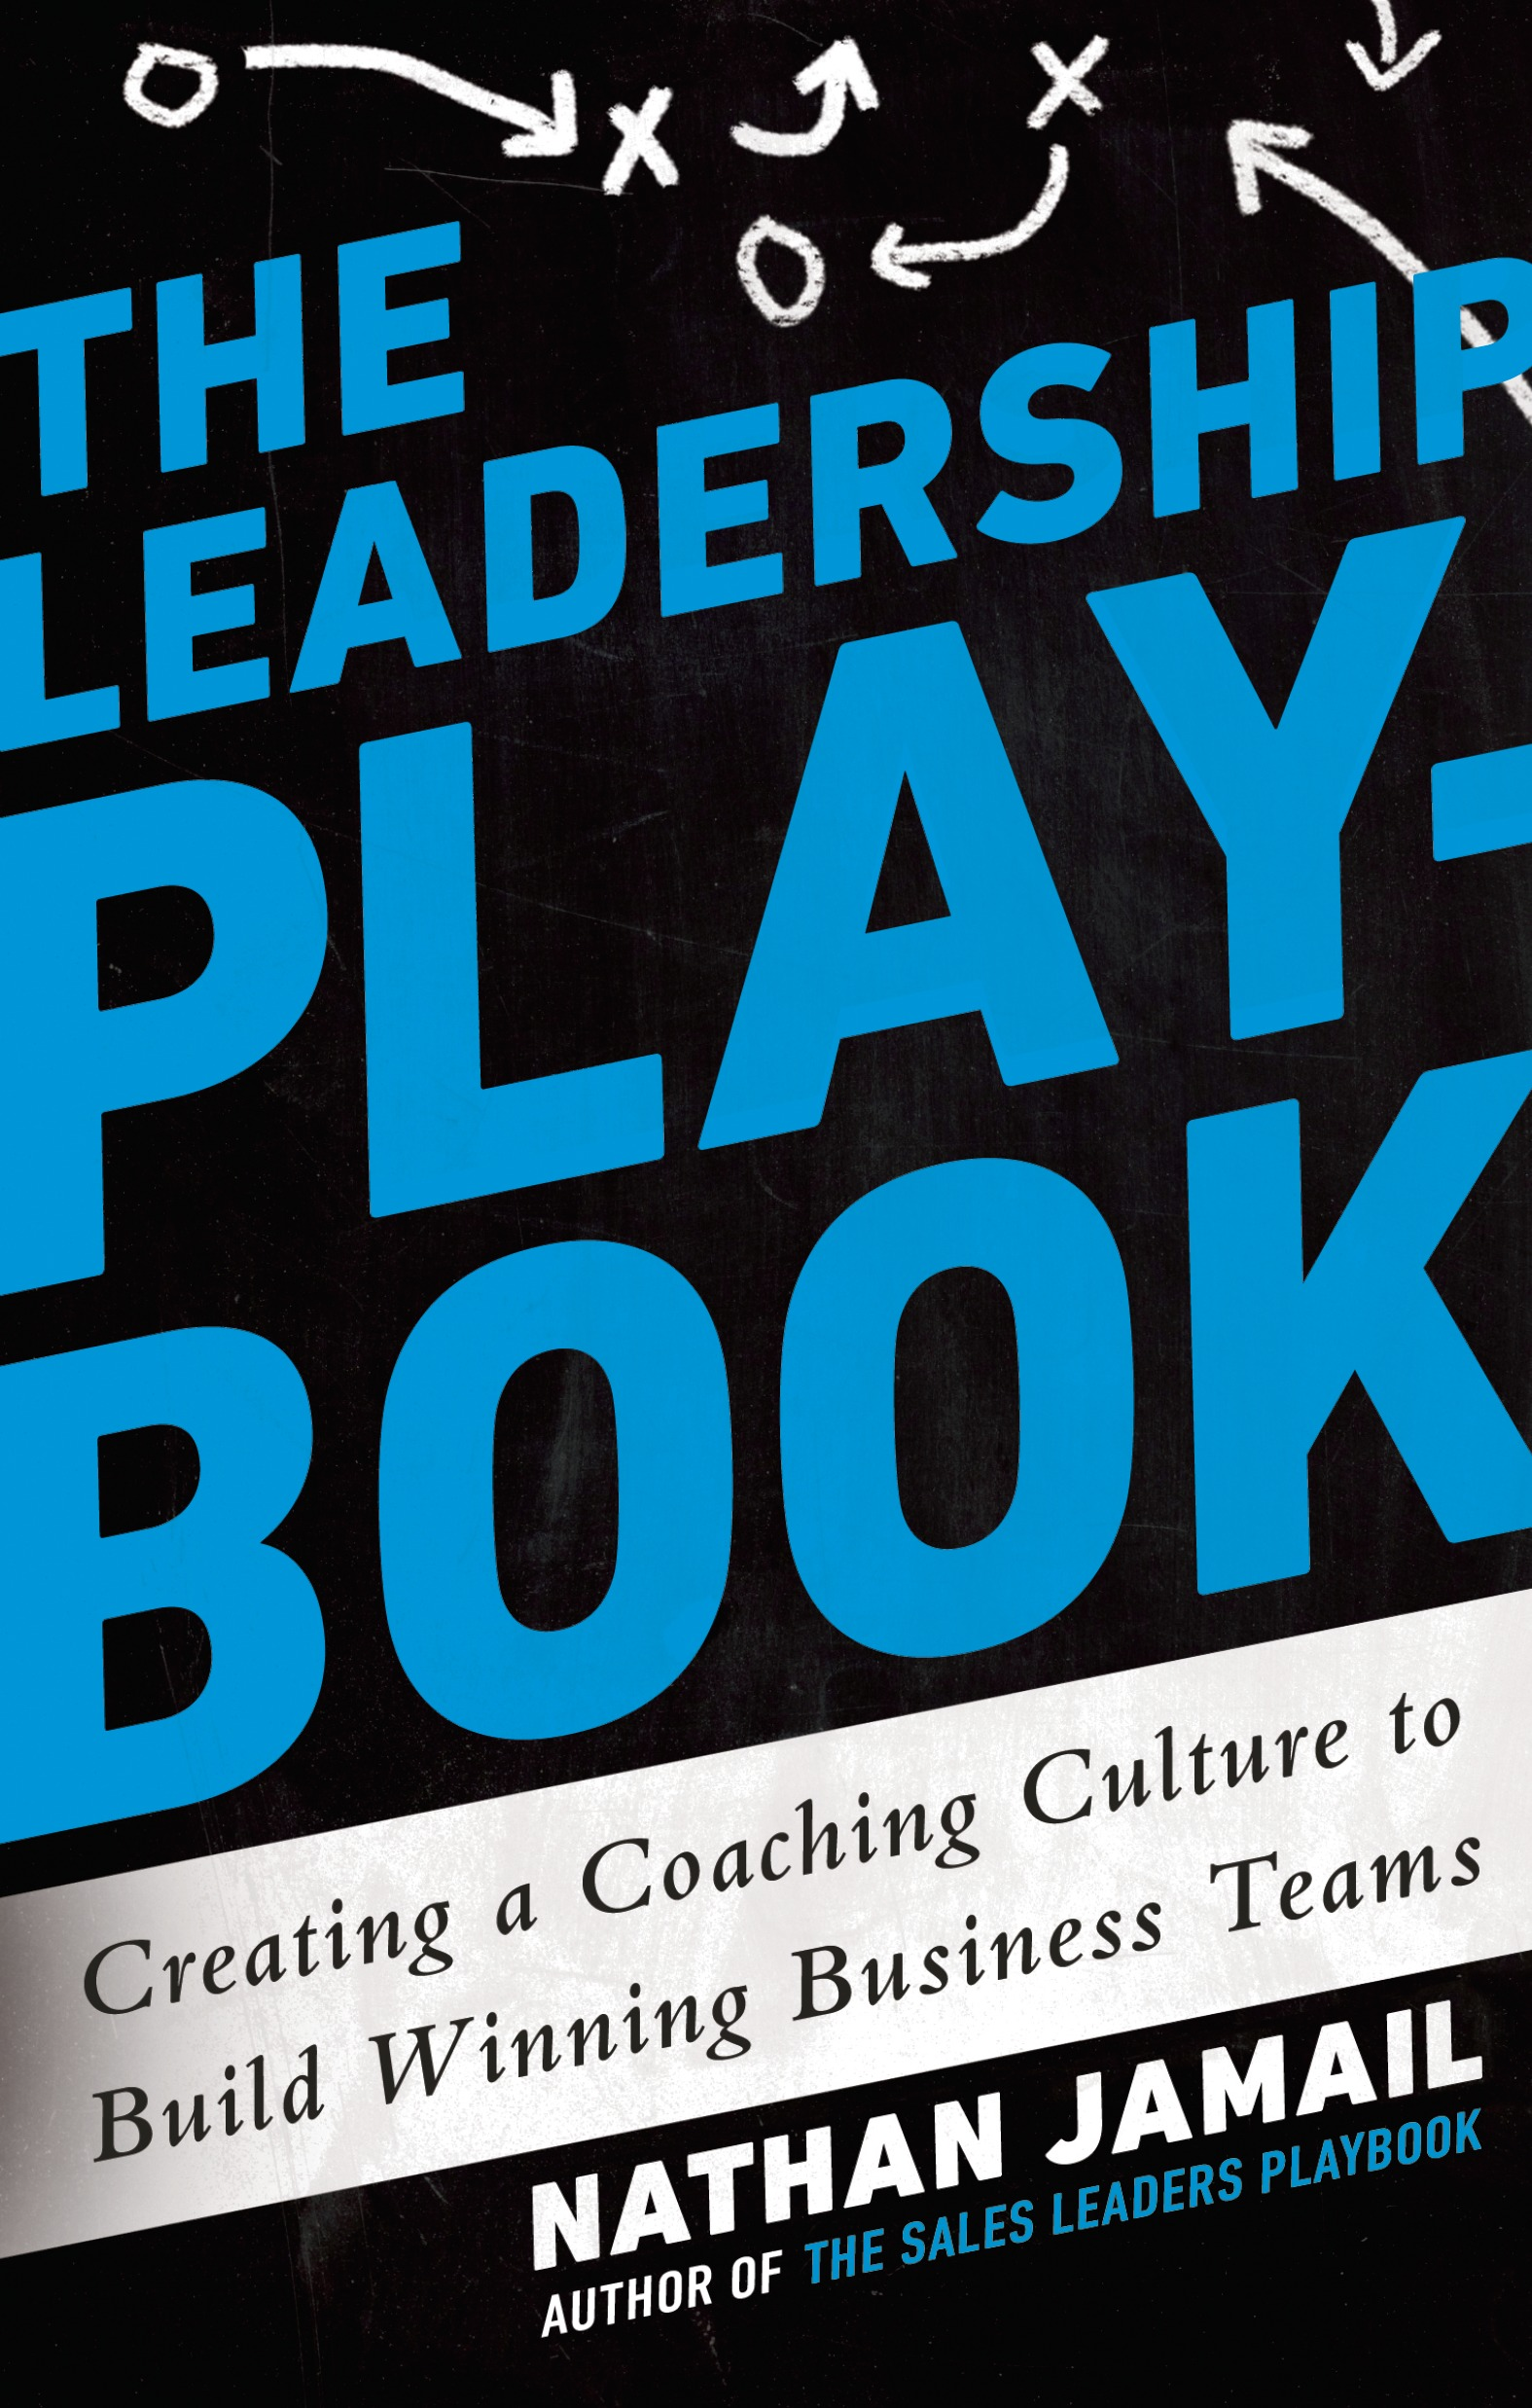 Download Ebook The Leadership Playbook by Nathan Jamail Pdf